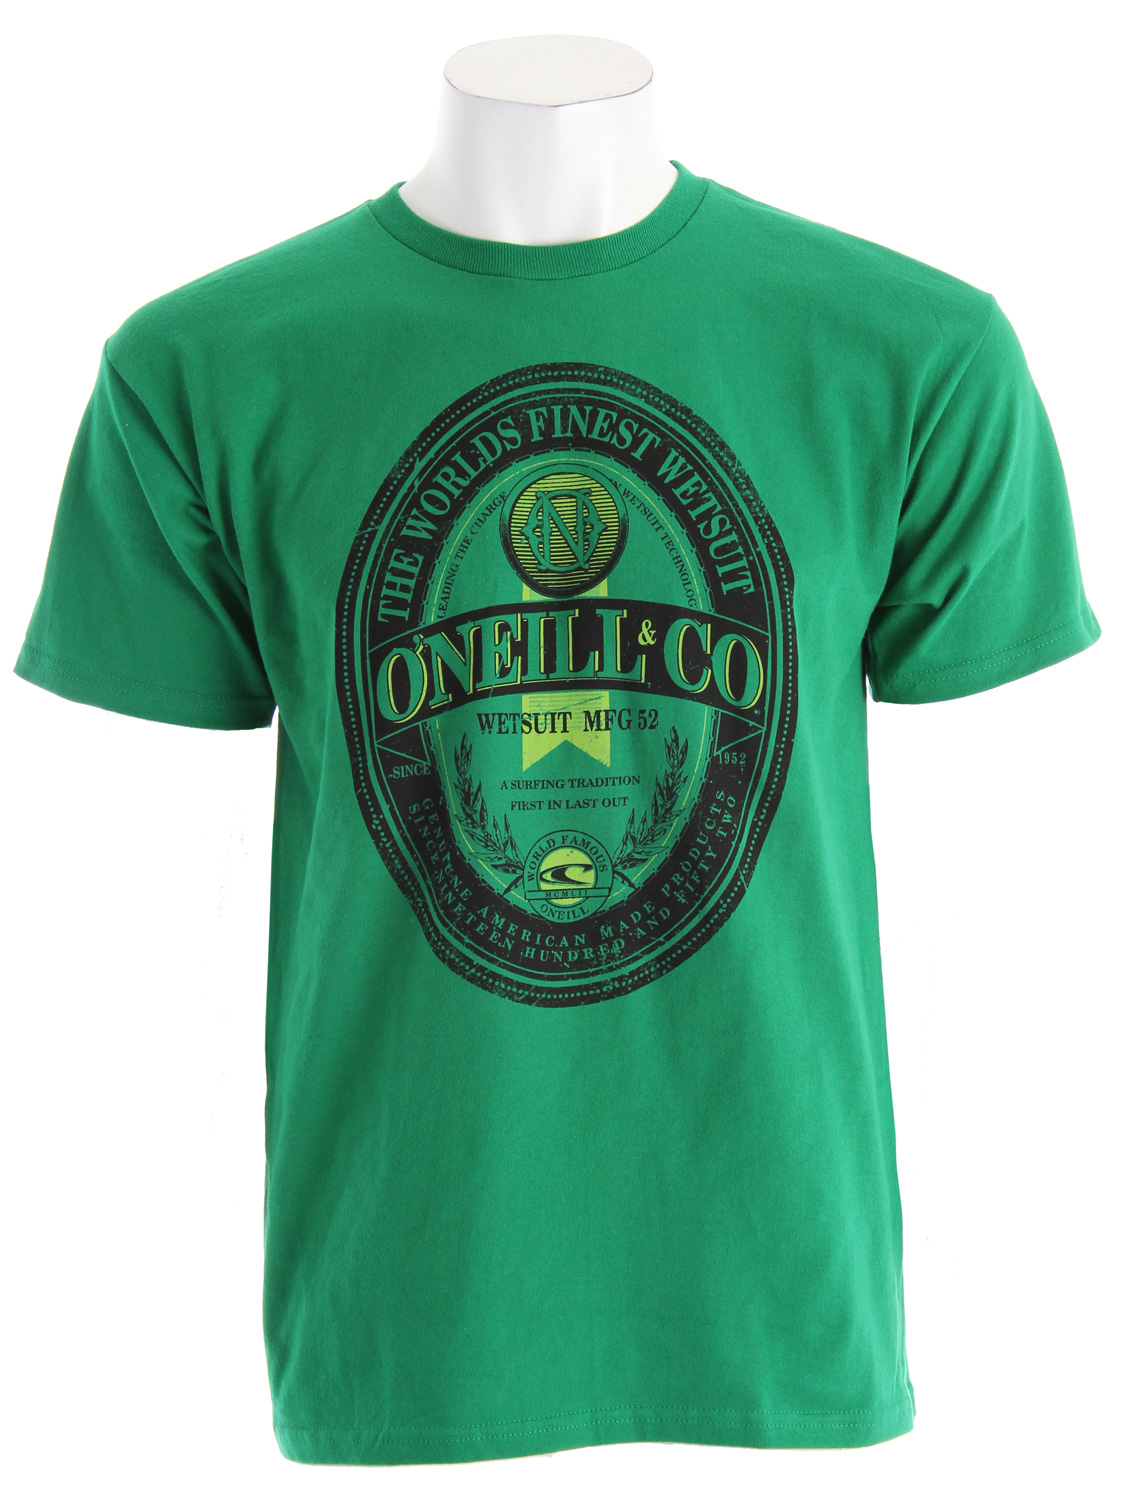 Surf While rockin' a name like O'Neill, the average Joe might find he is feeling a little Irish. Get luck with the O'Neill Tanked T-ShirtKey Features of The O'Neill Tanked T-Shirt: Regular Fit Tank Top Short Sleeve 100% ringspun cotton  basic fit tee Softhand screenprint - $13.95